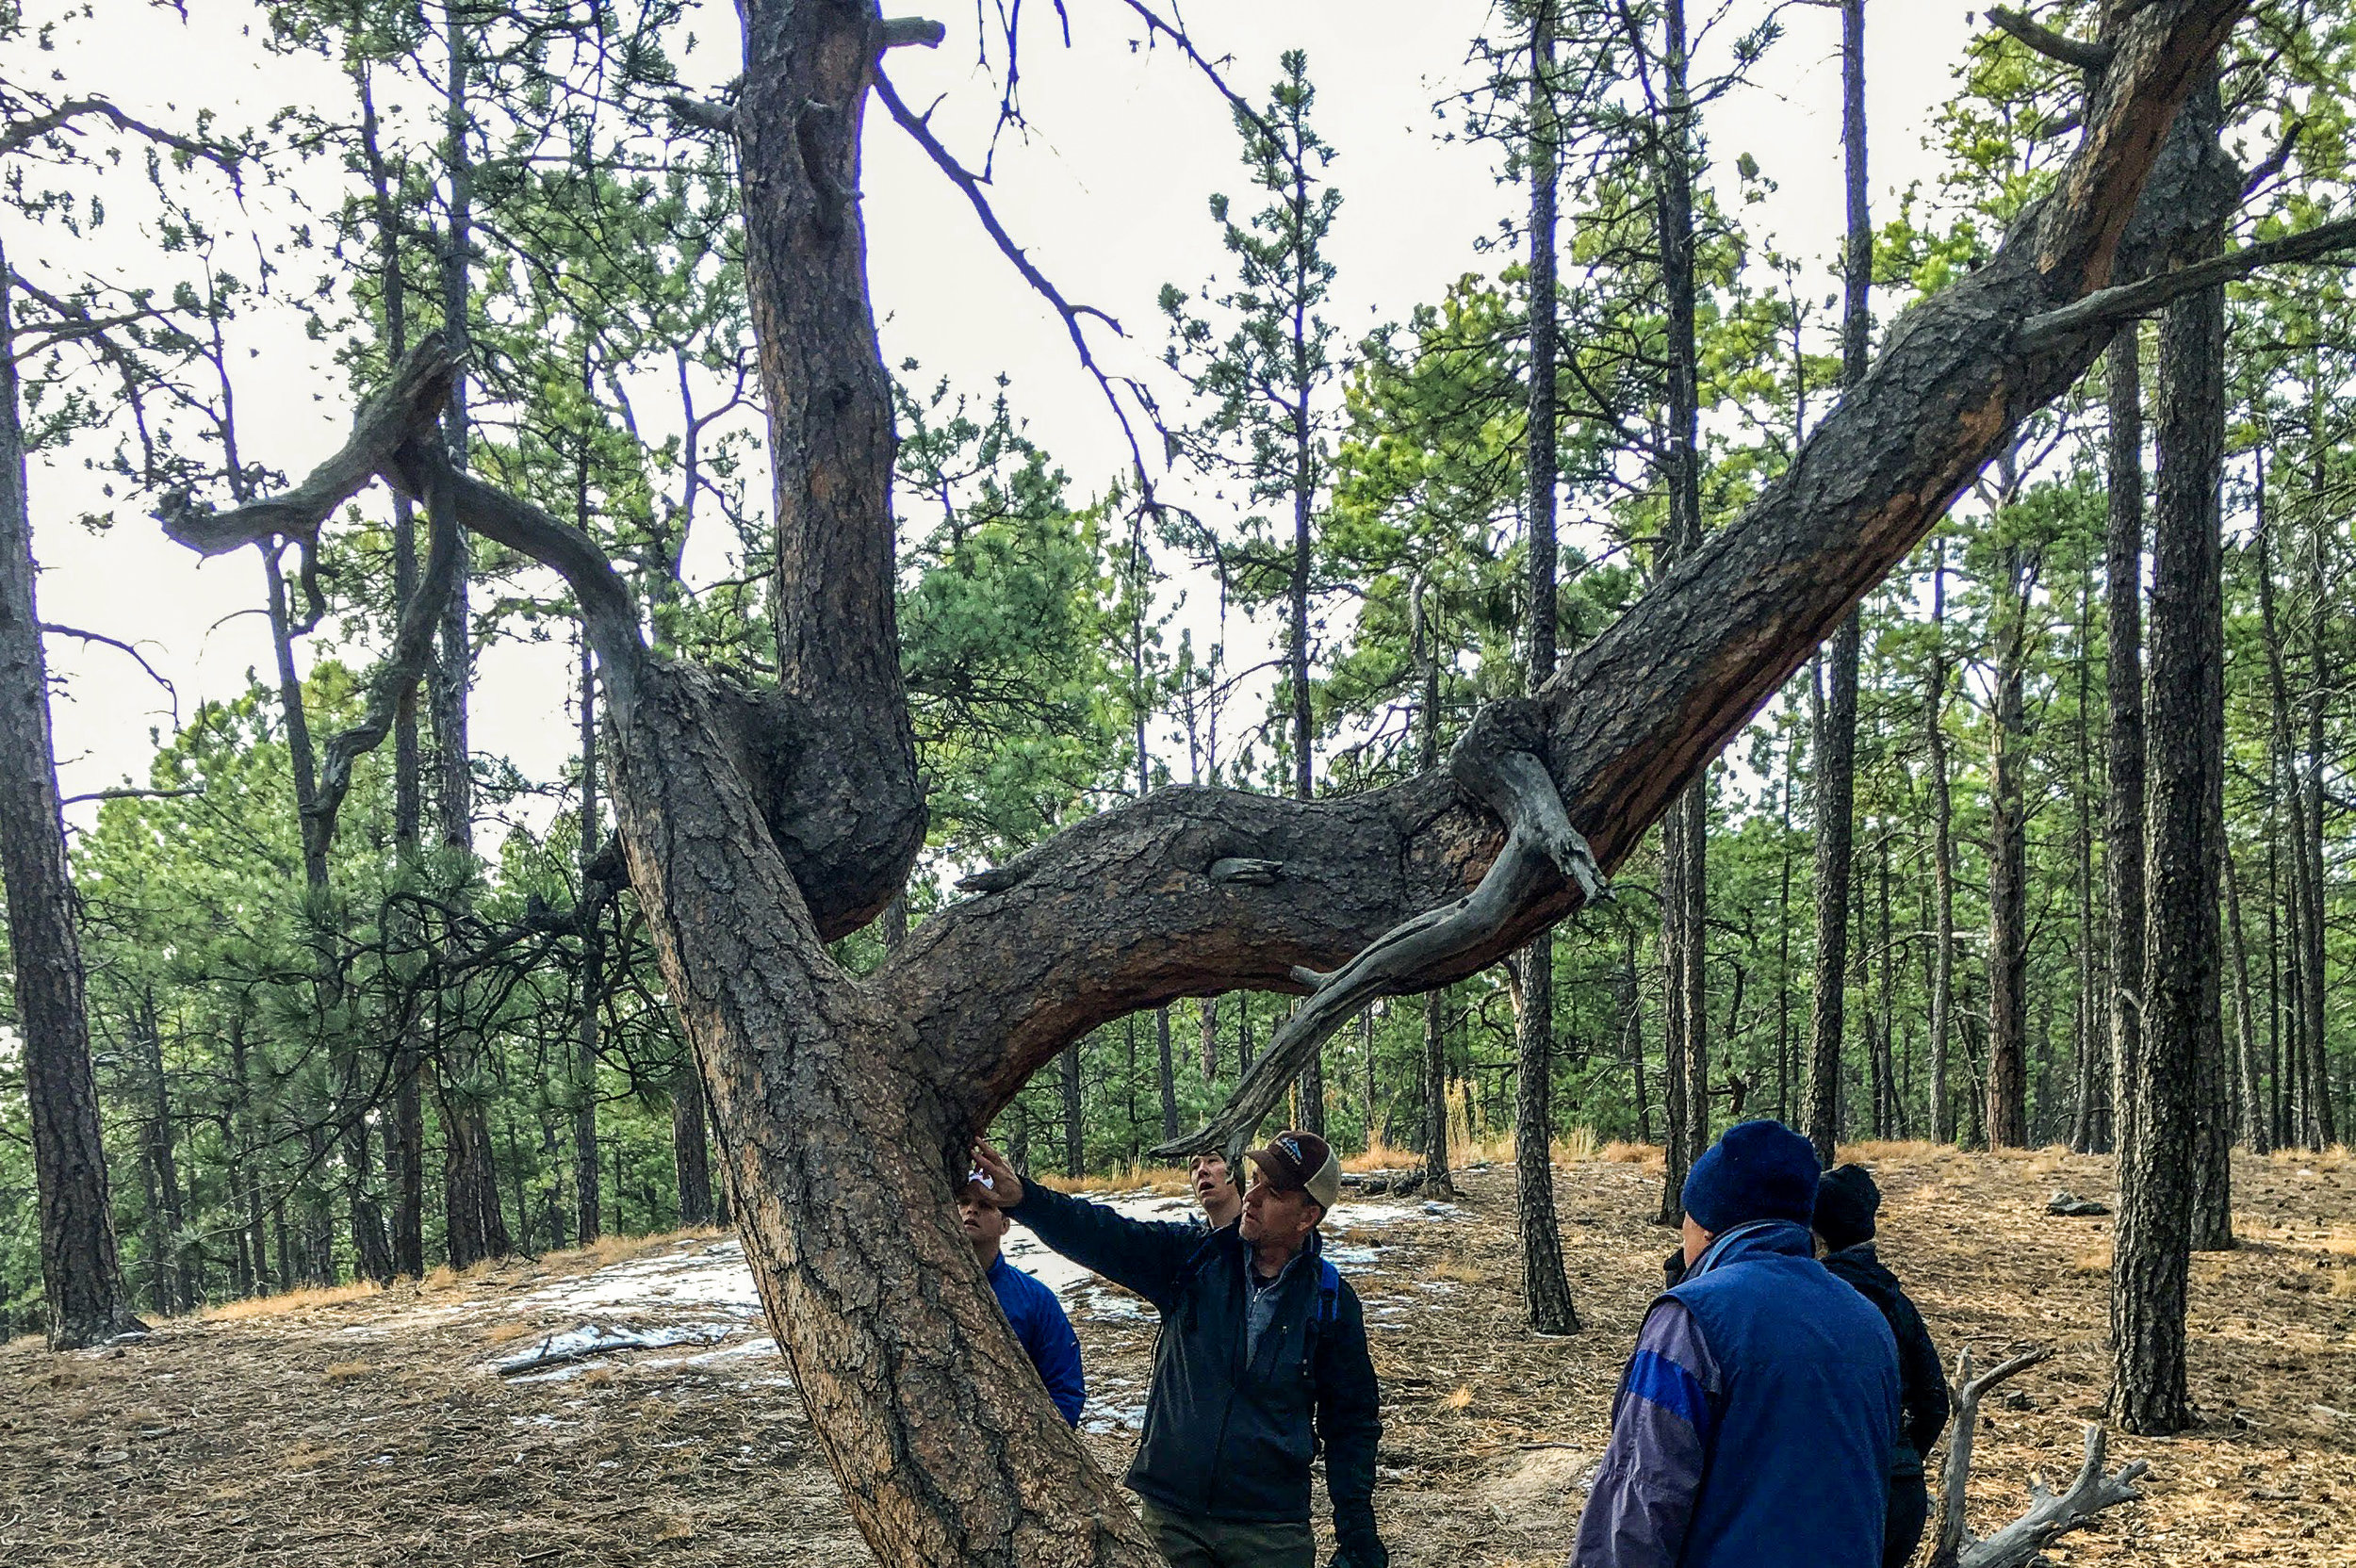 Twisted Trees - This easy loop trail winds through the Fallen Timbers Wilderness Area in Fox Run Regional Park.